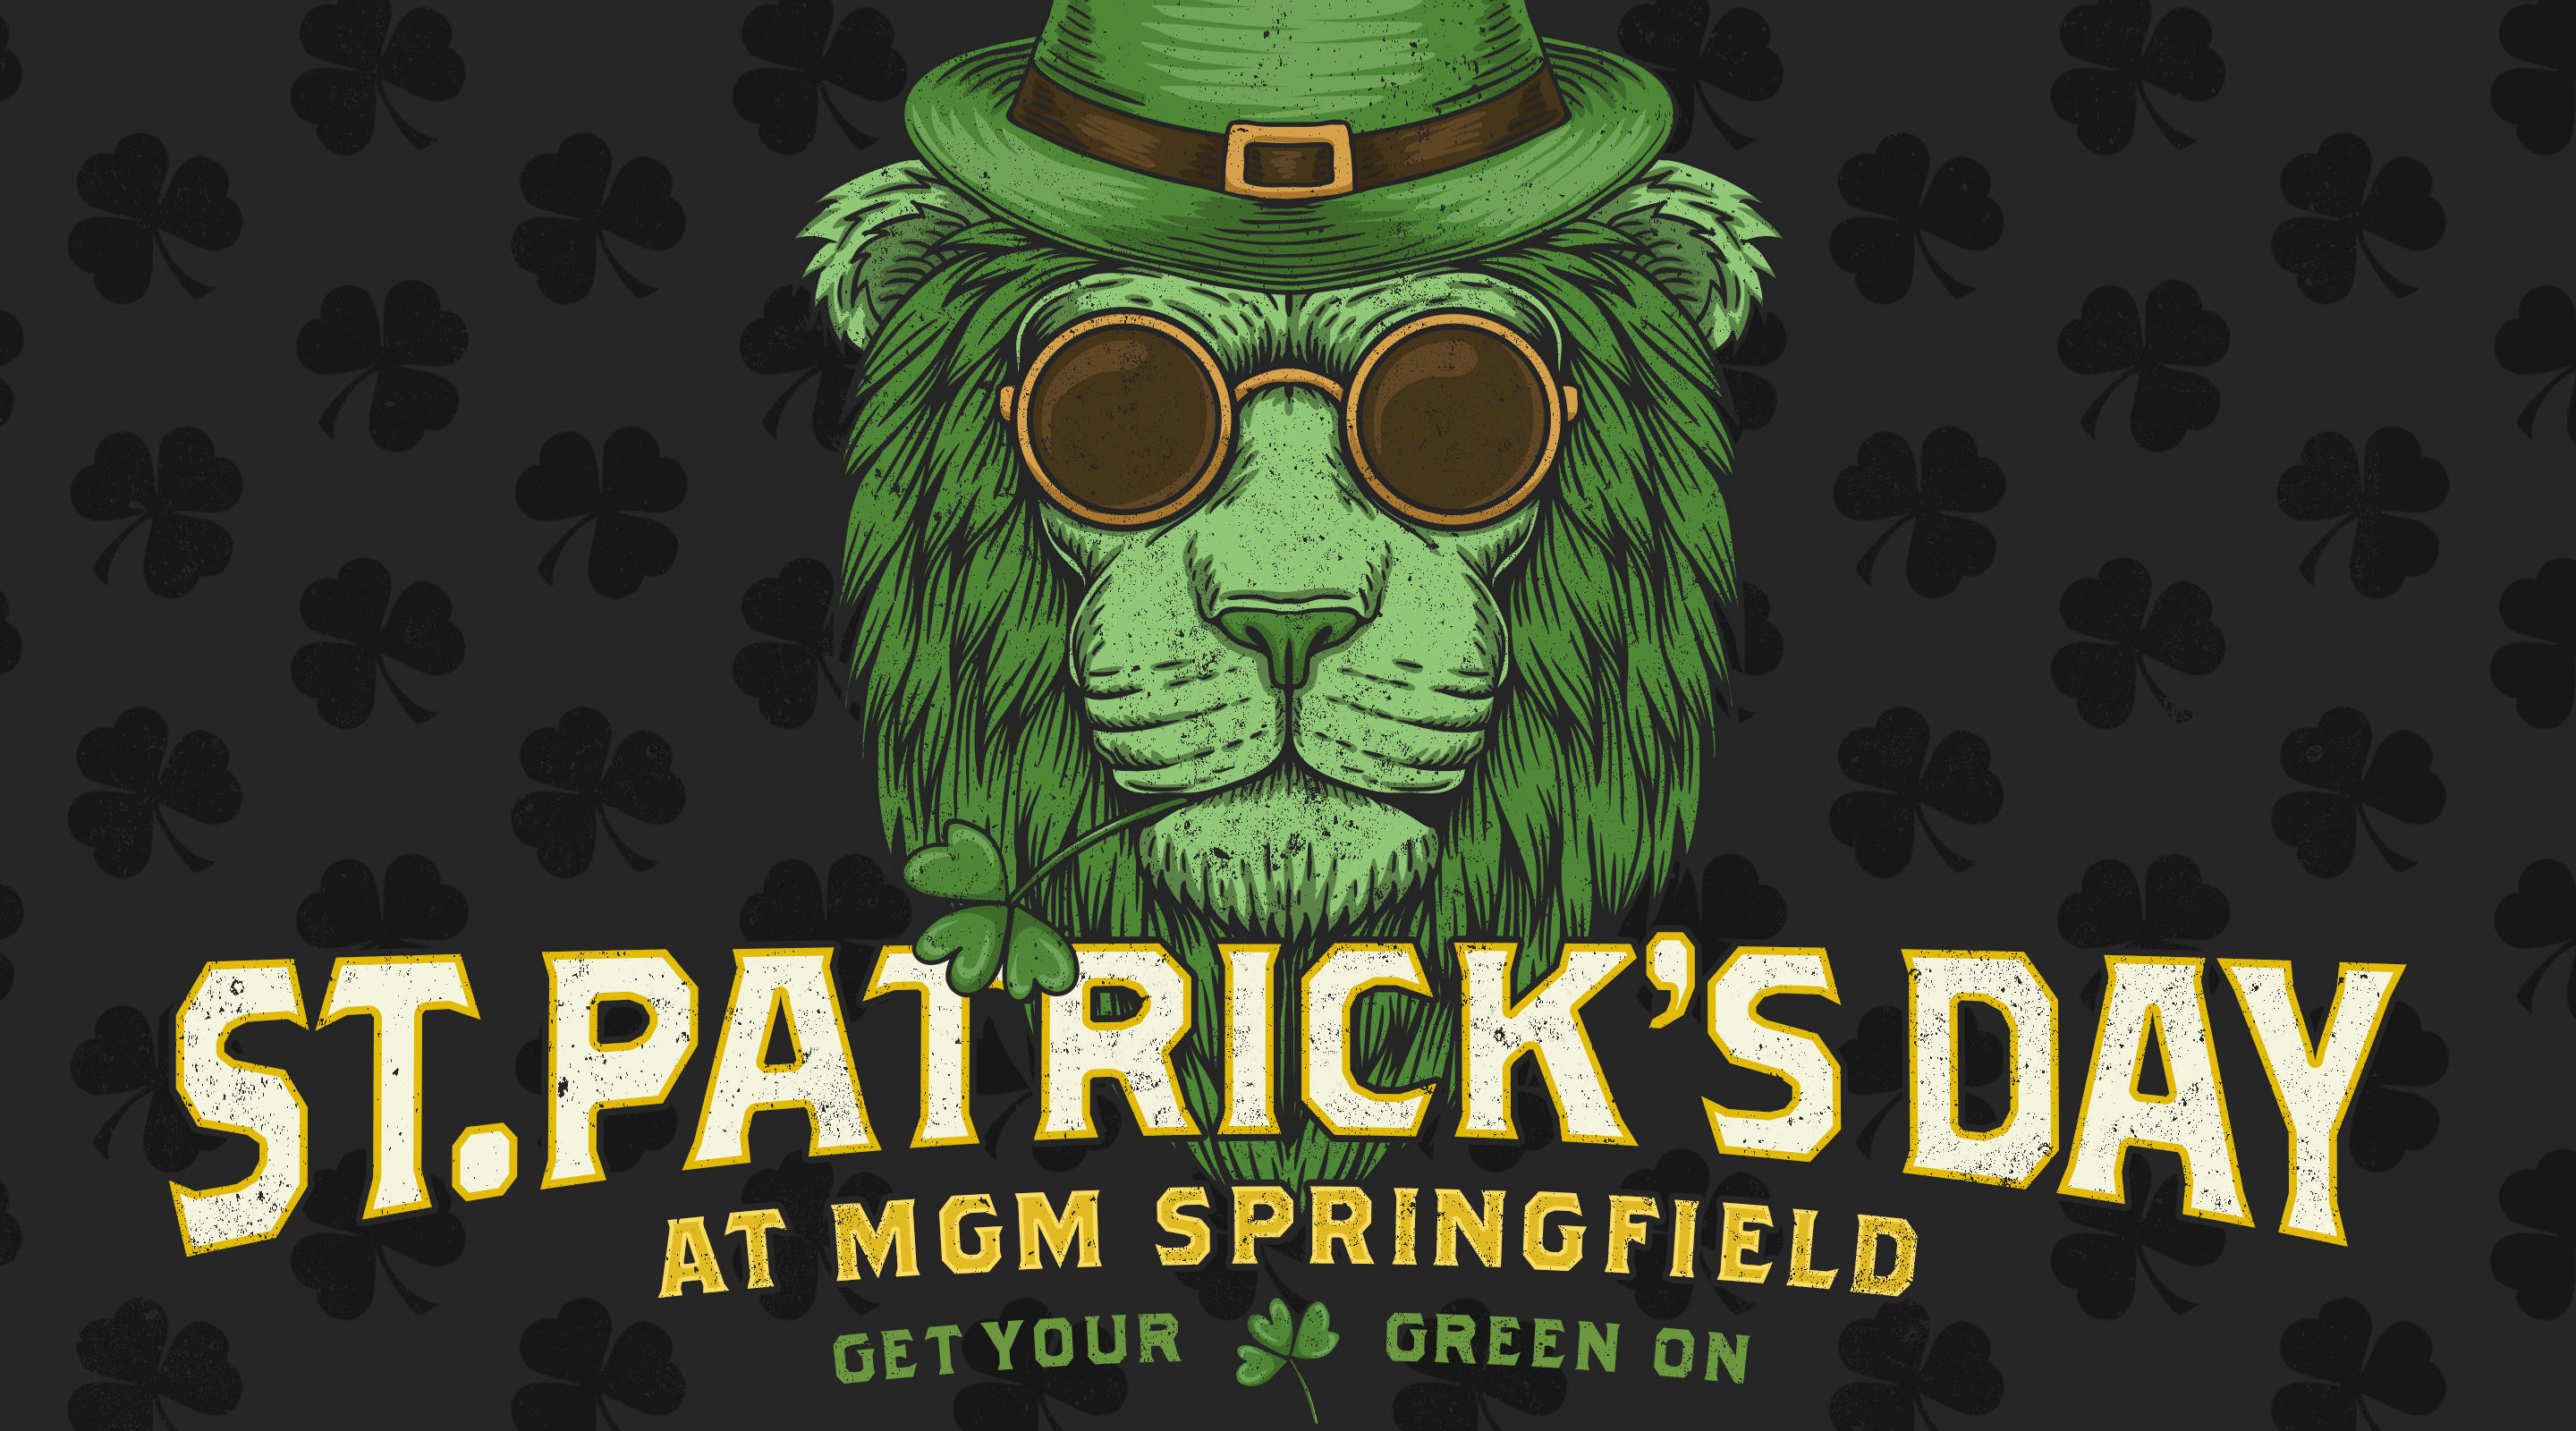 St Patrick's Day Celebrated on March 14 at MGM Springfield.